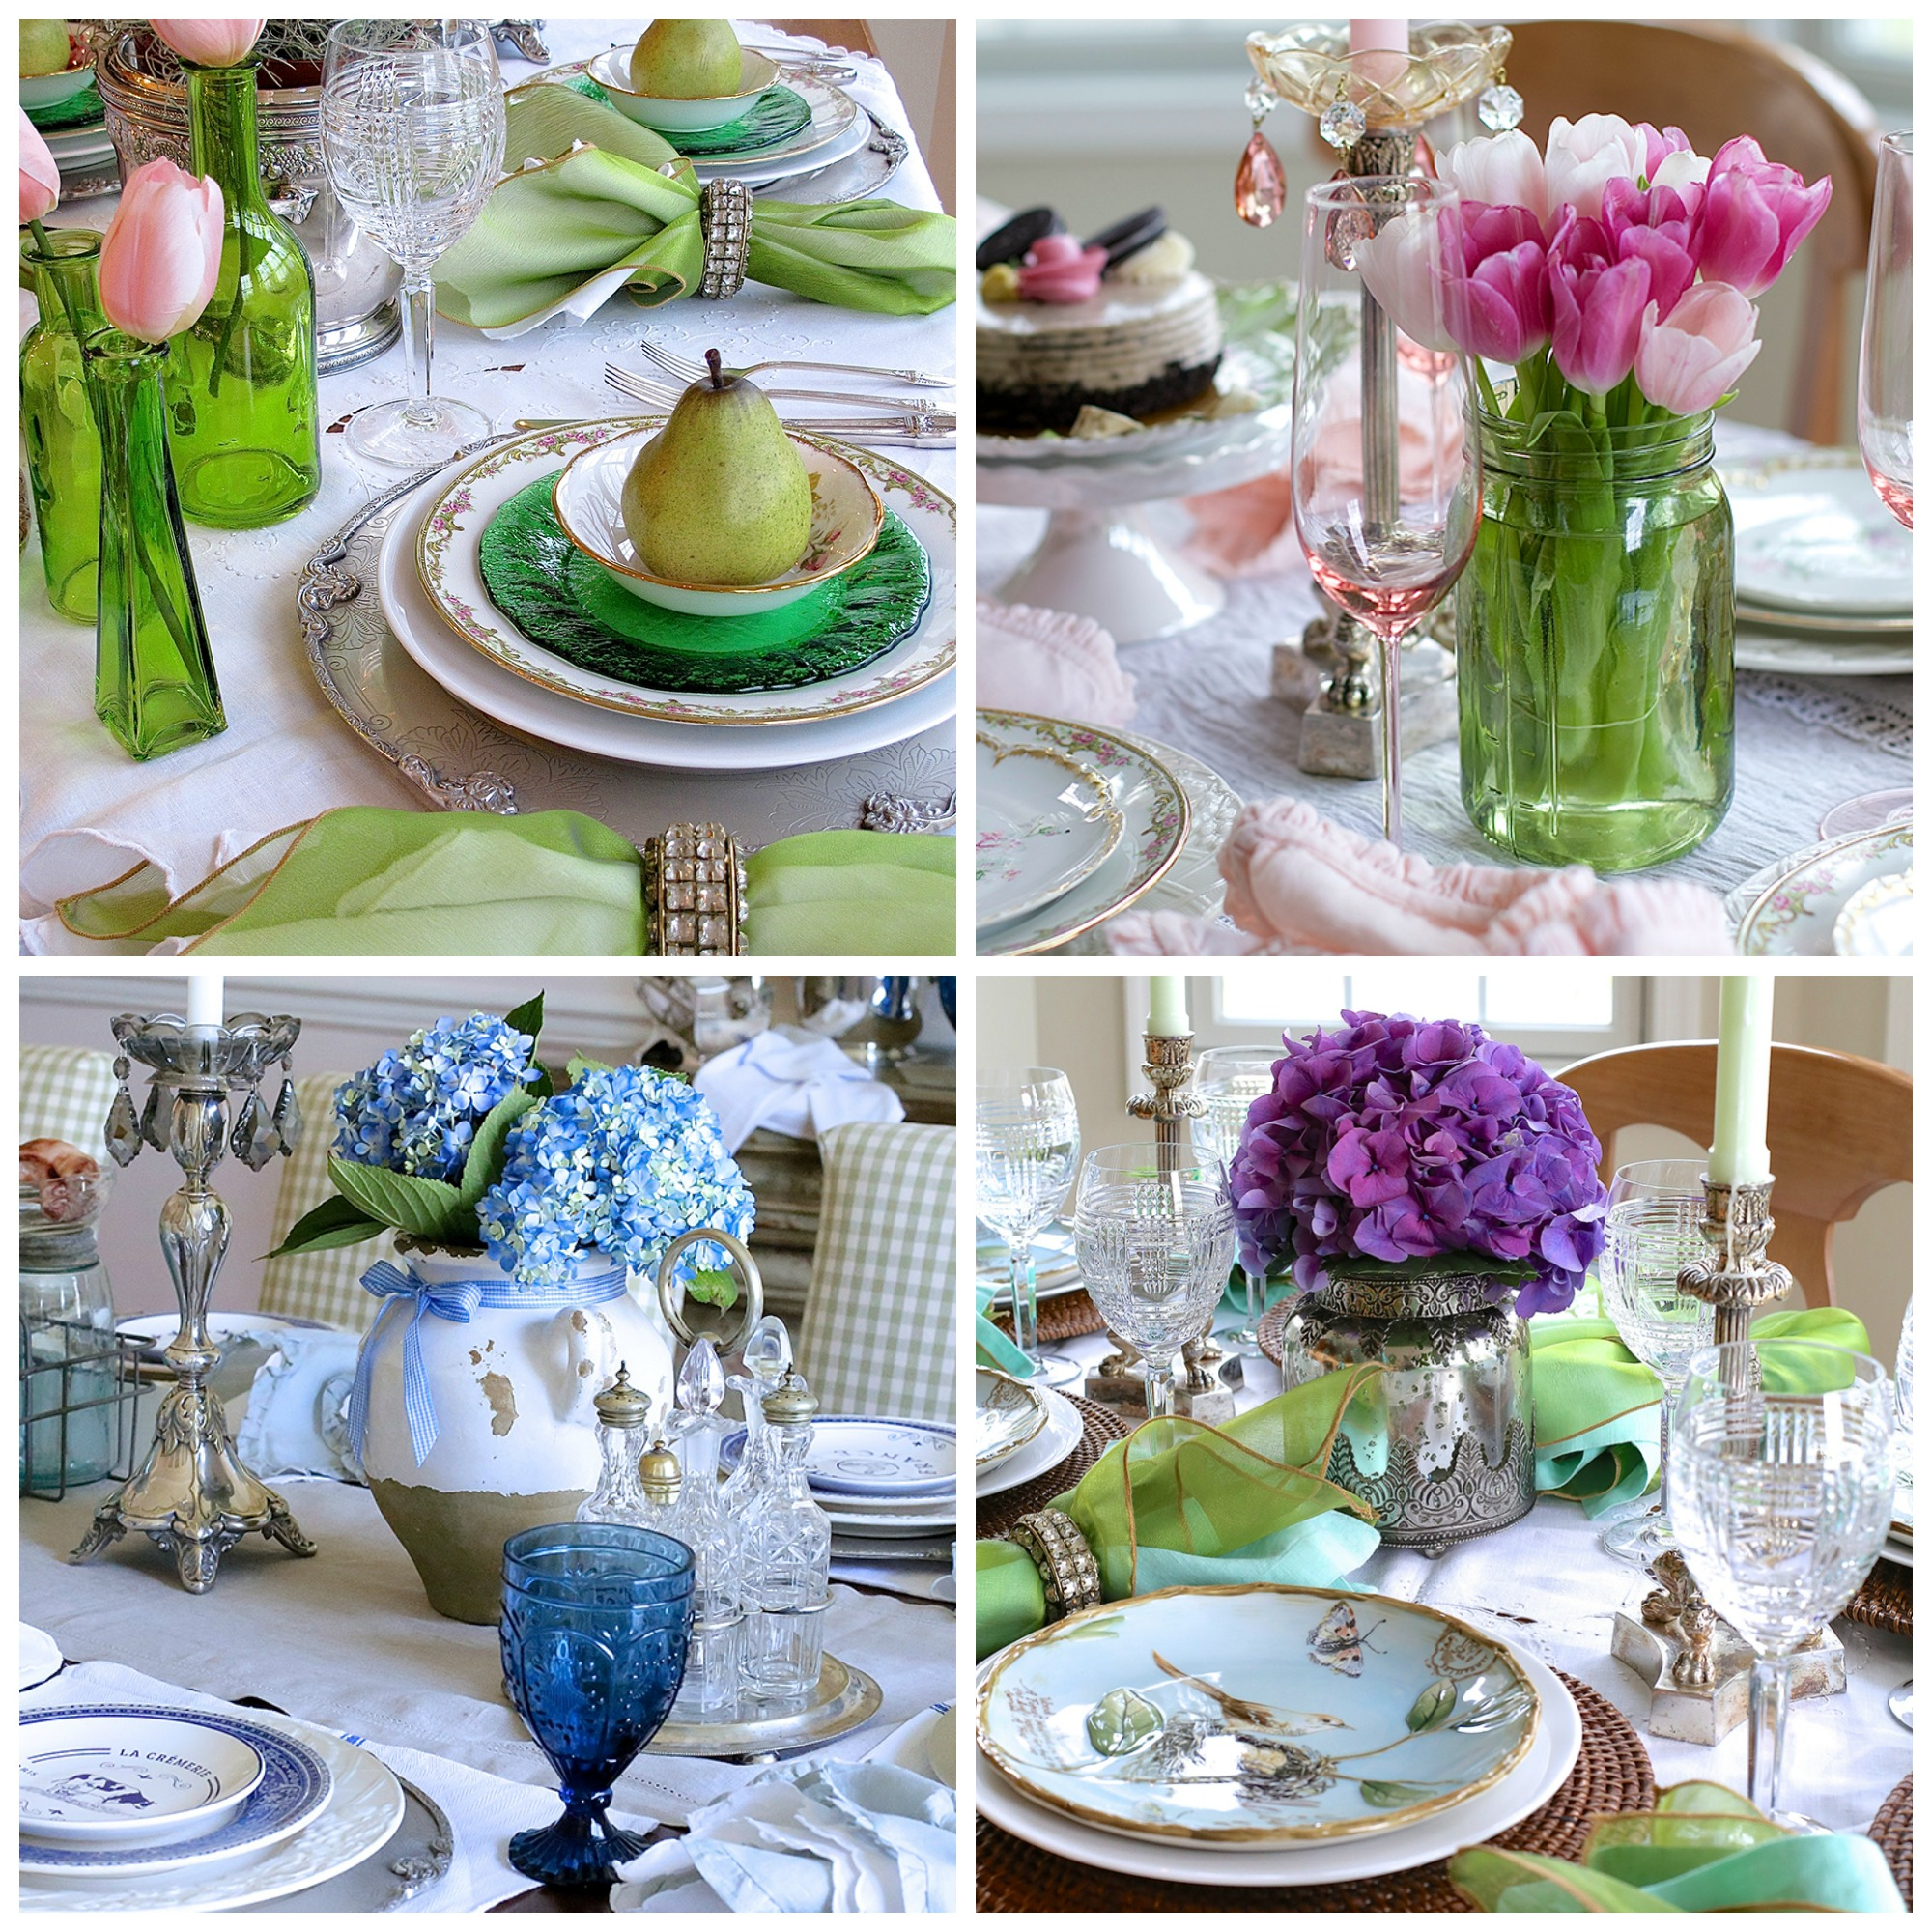 Desigthusiasm - Spring Tablescape Ideas